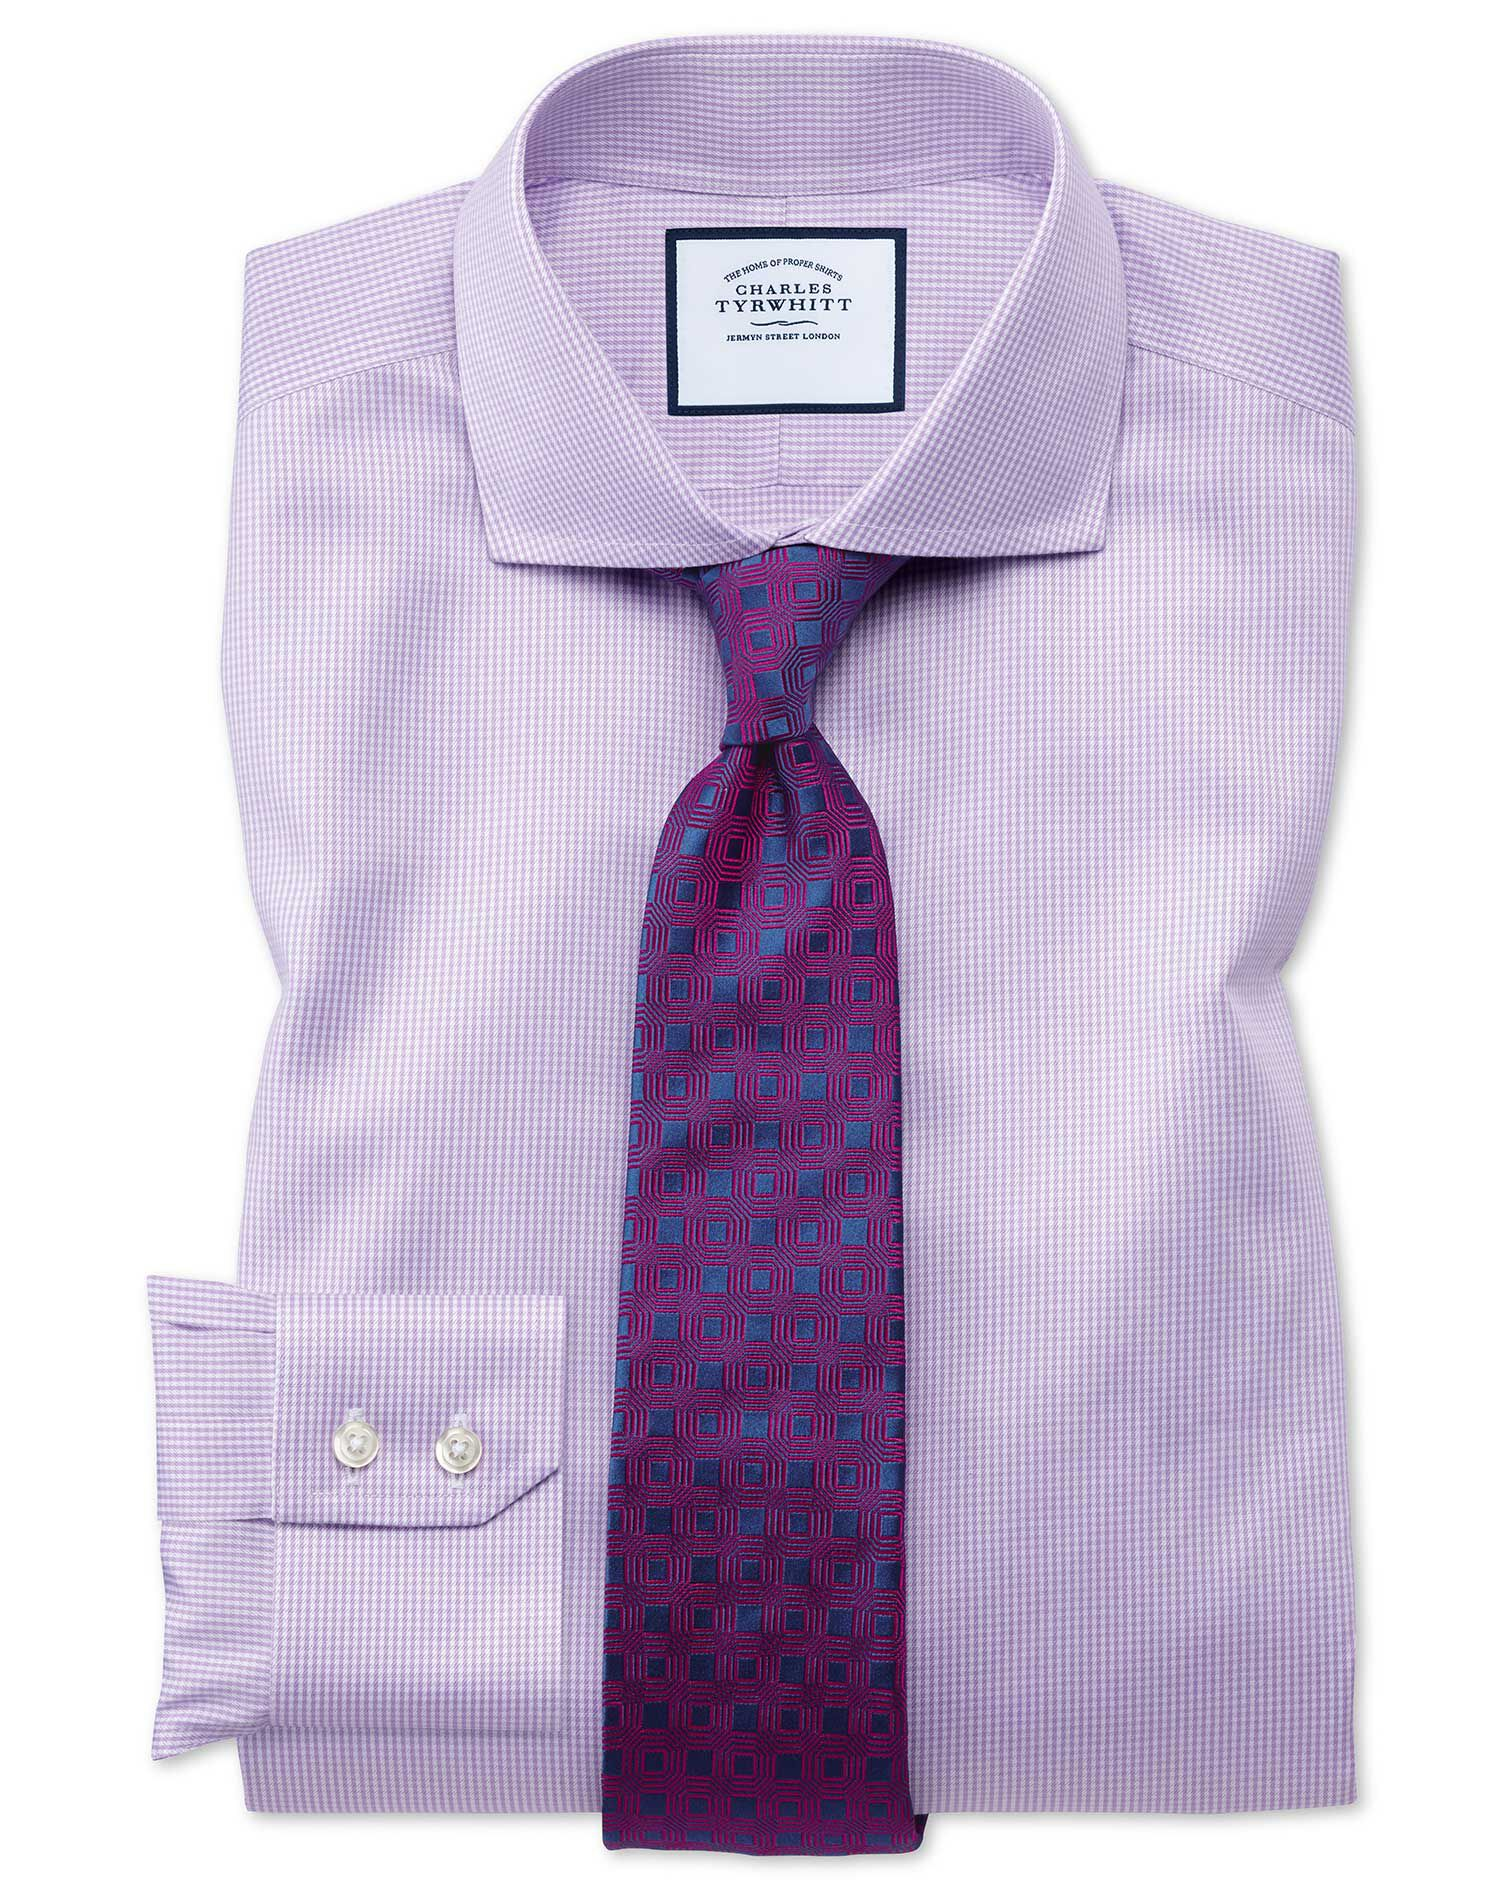 Extra Slim Fit Cutaway Collar Non-Iron Puppytooth Lilac Cotton Formal Shirt Single Cuff Size 14.5/33